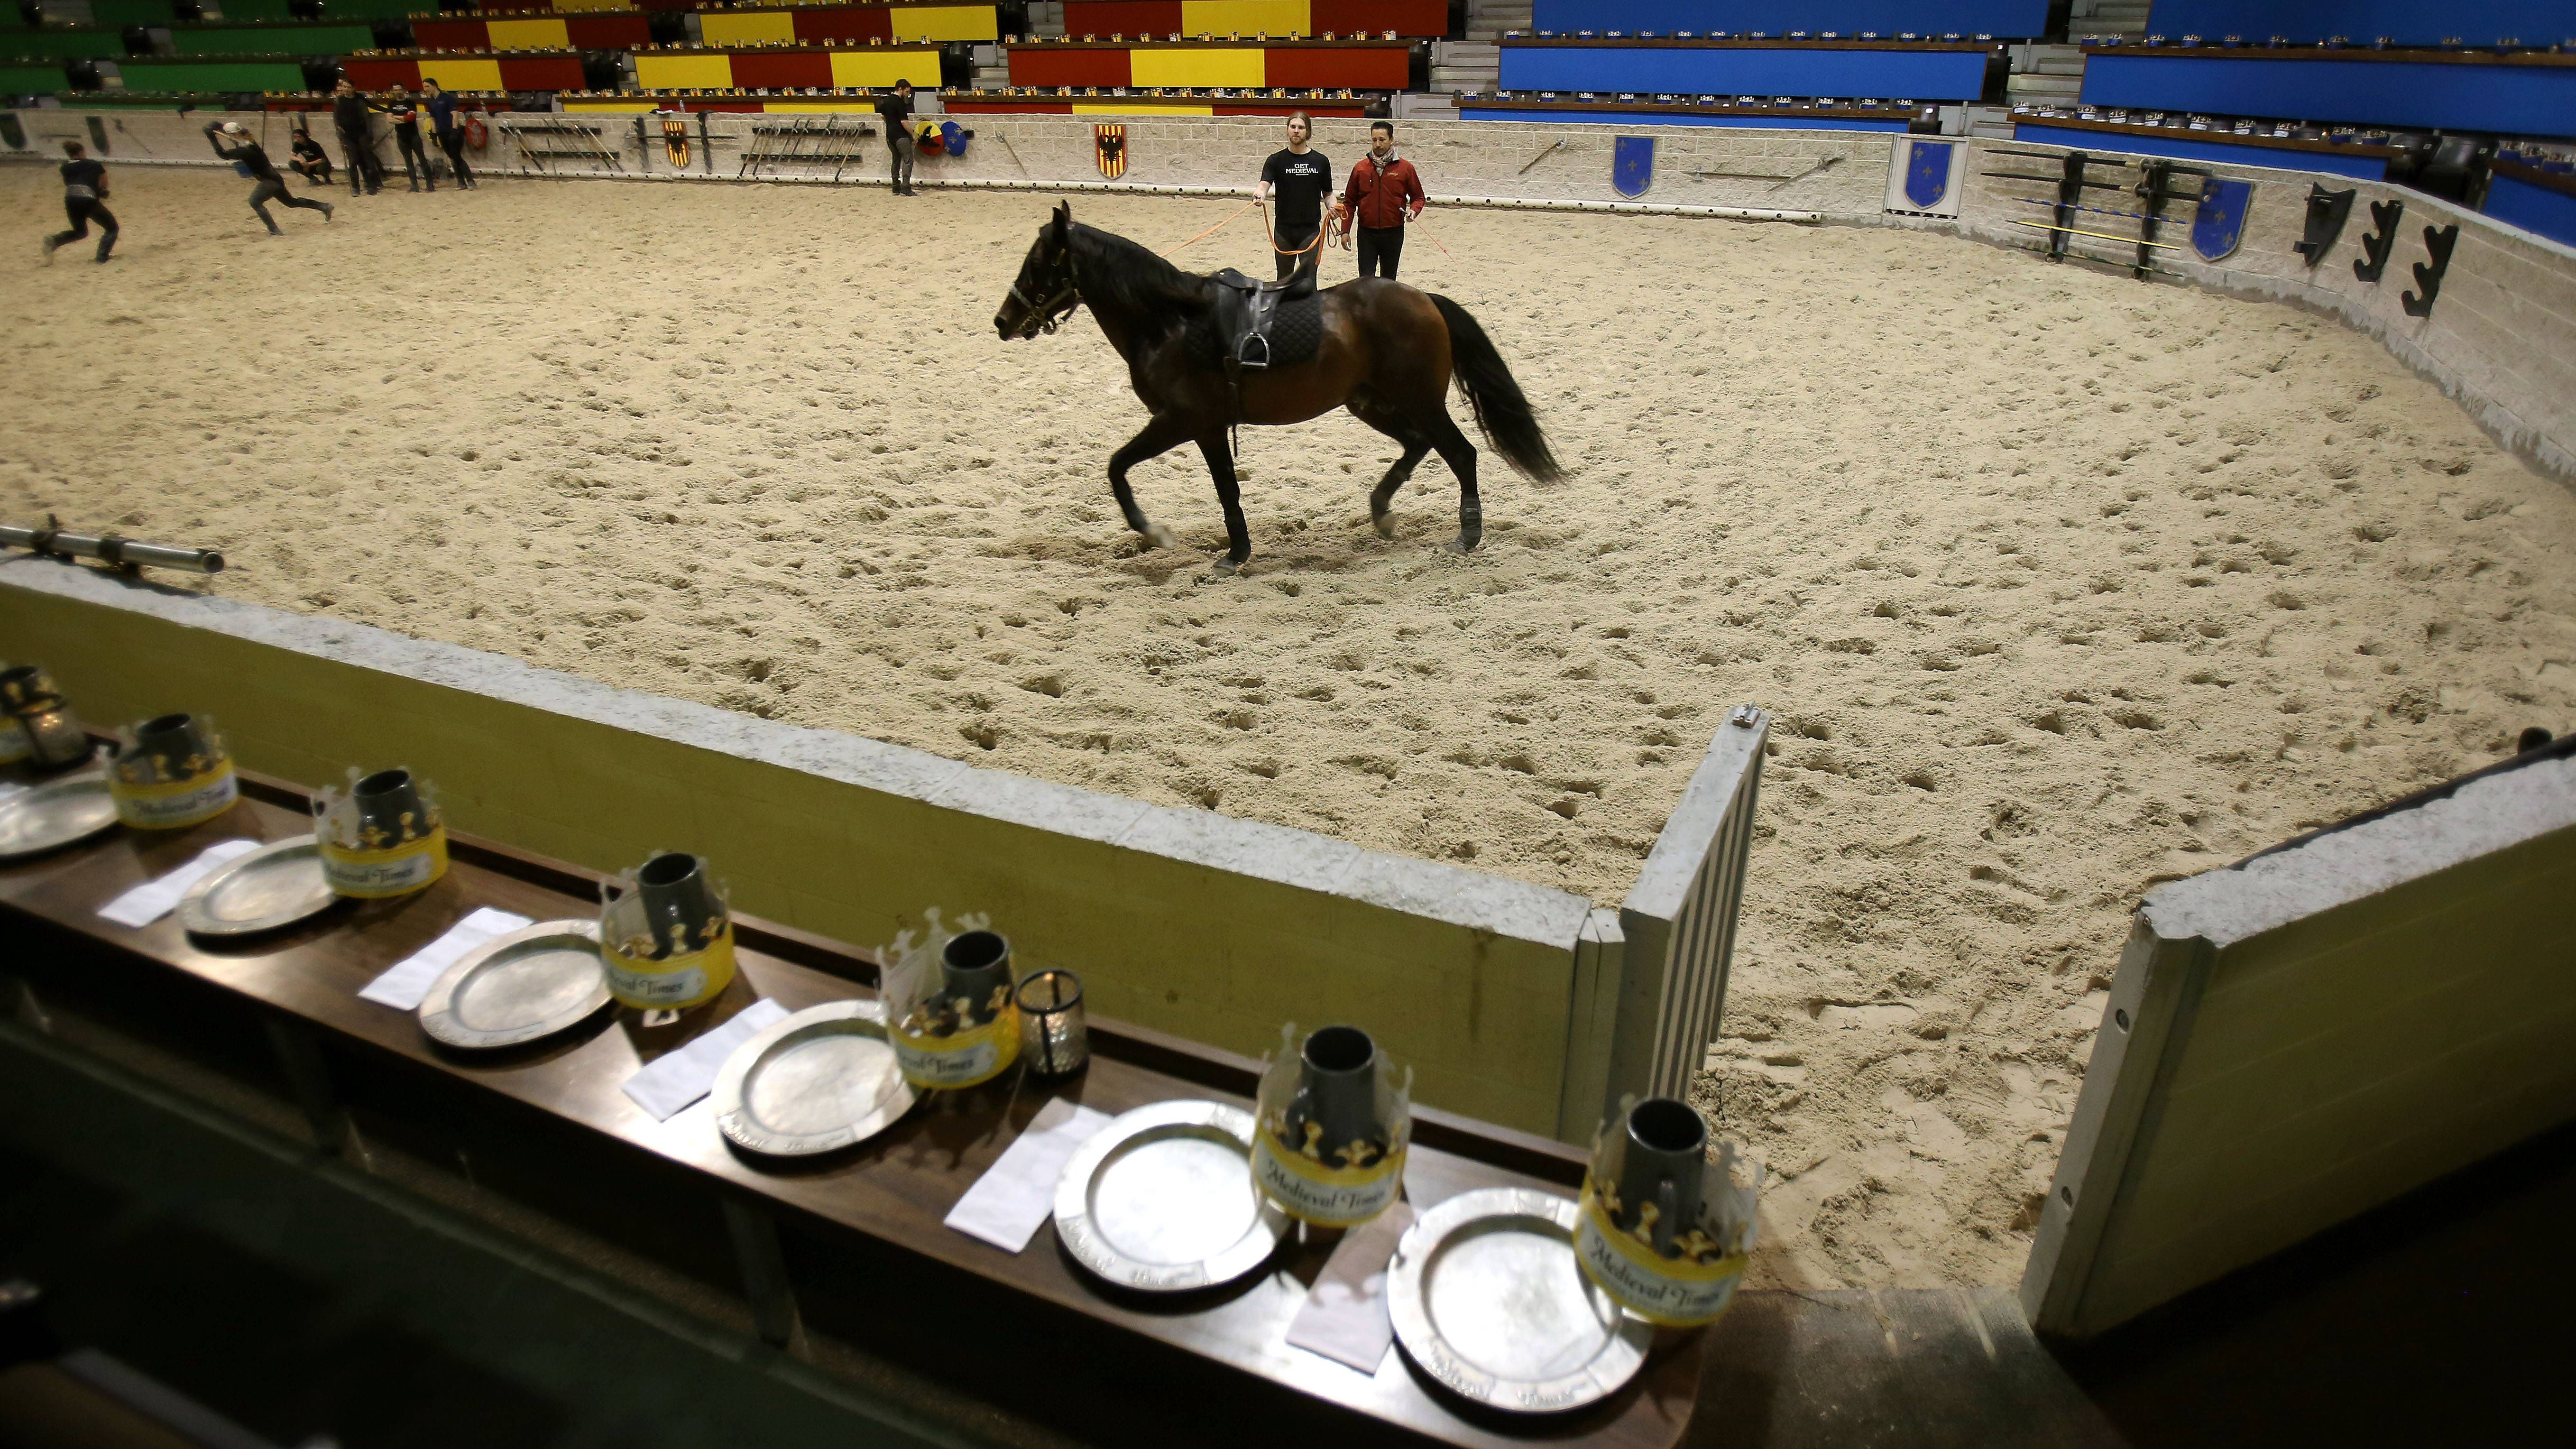 Above, Contreras rehearses with the horse before a show in Hoffman Estates. Below, he takes a horse through training at Medieval Times.